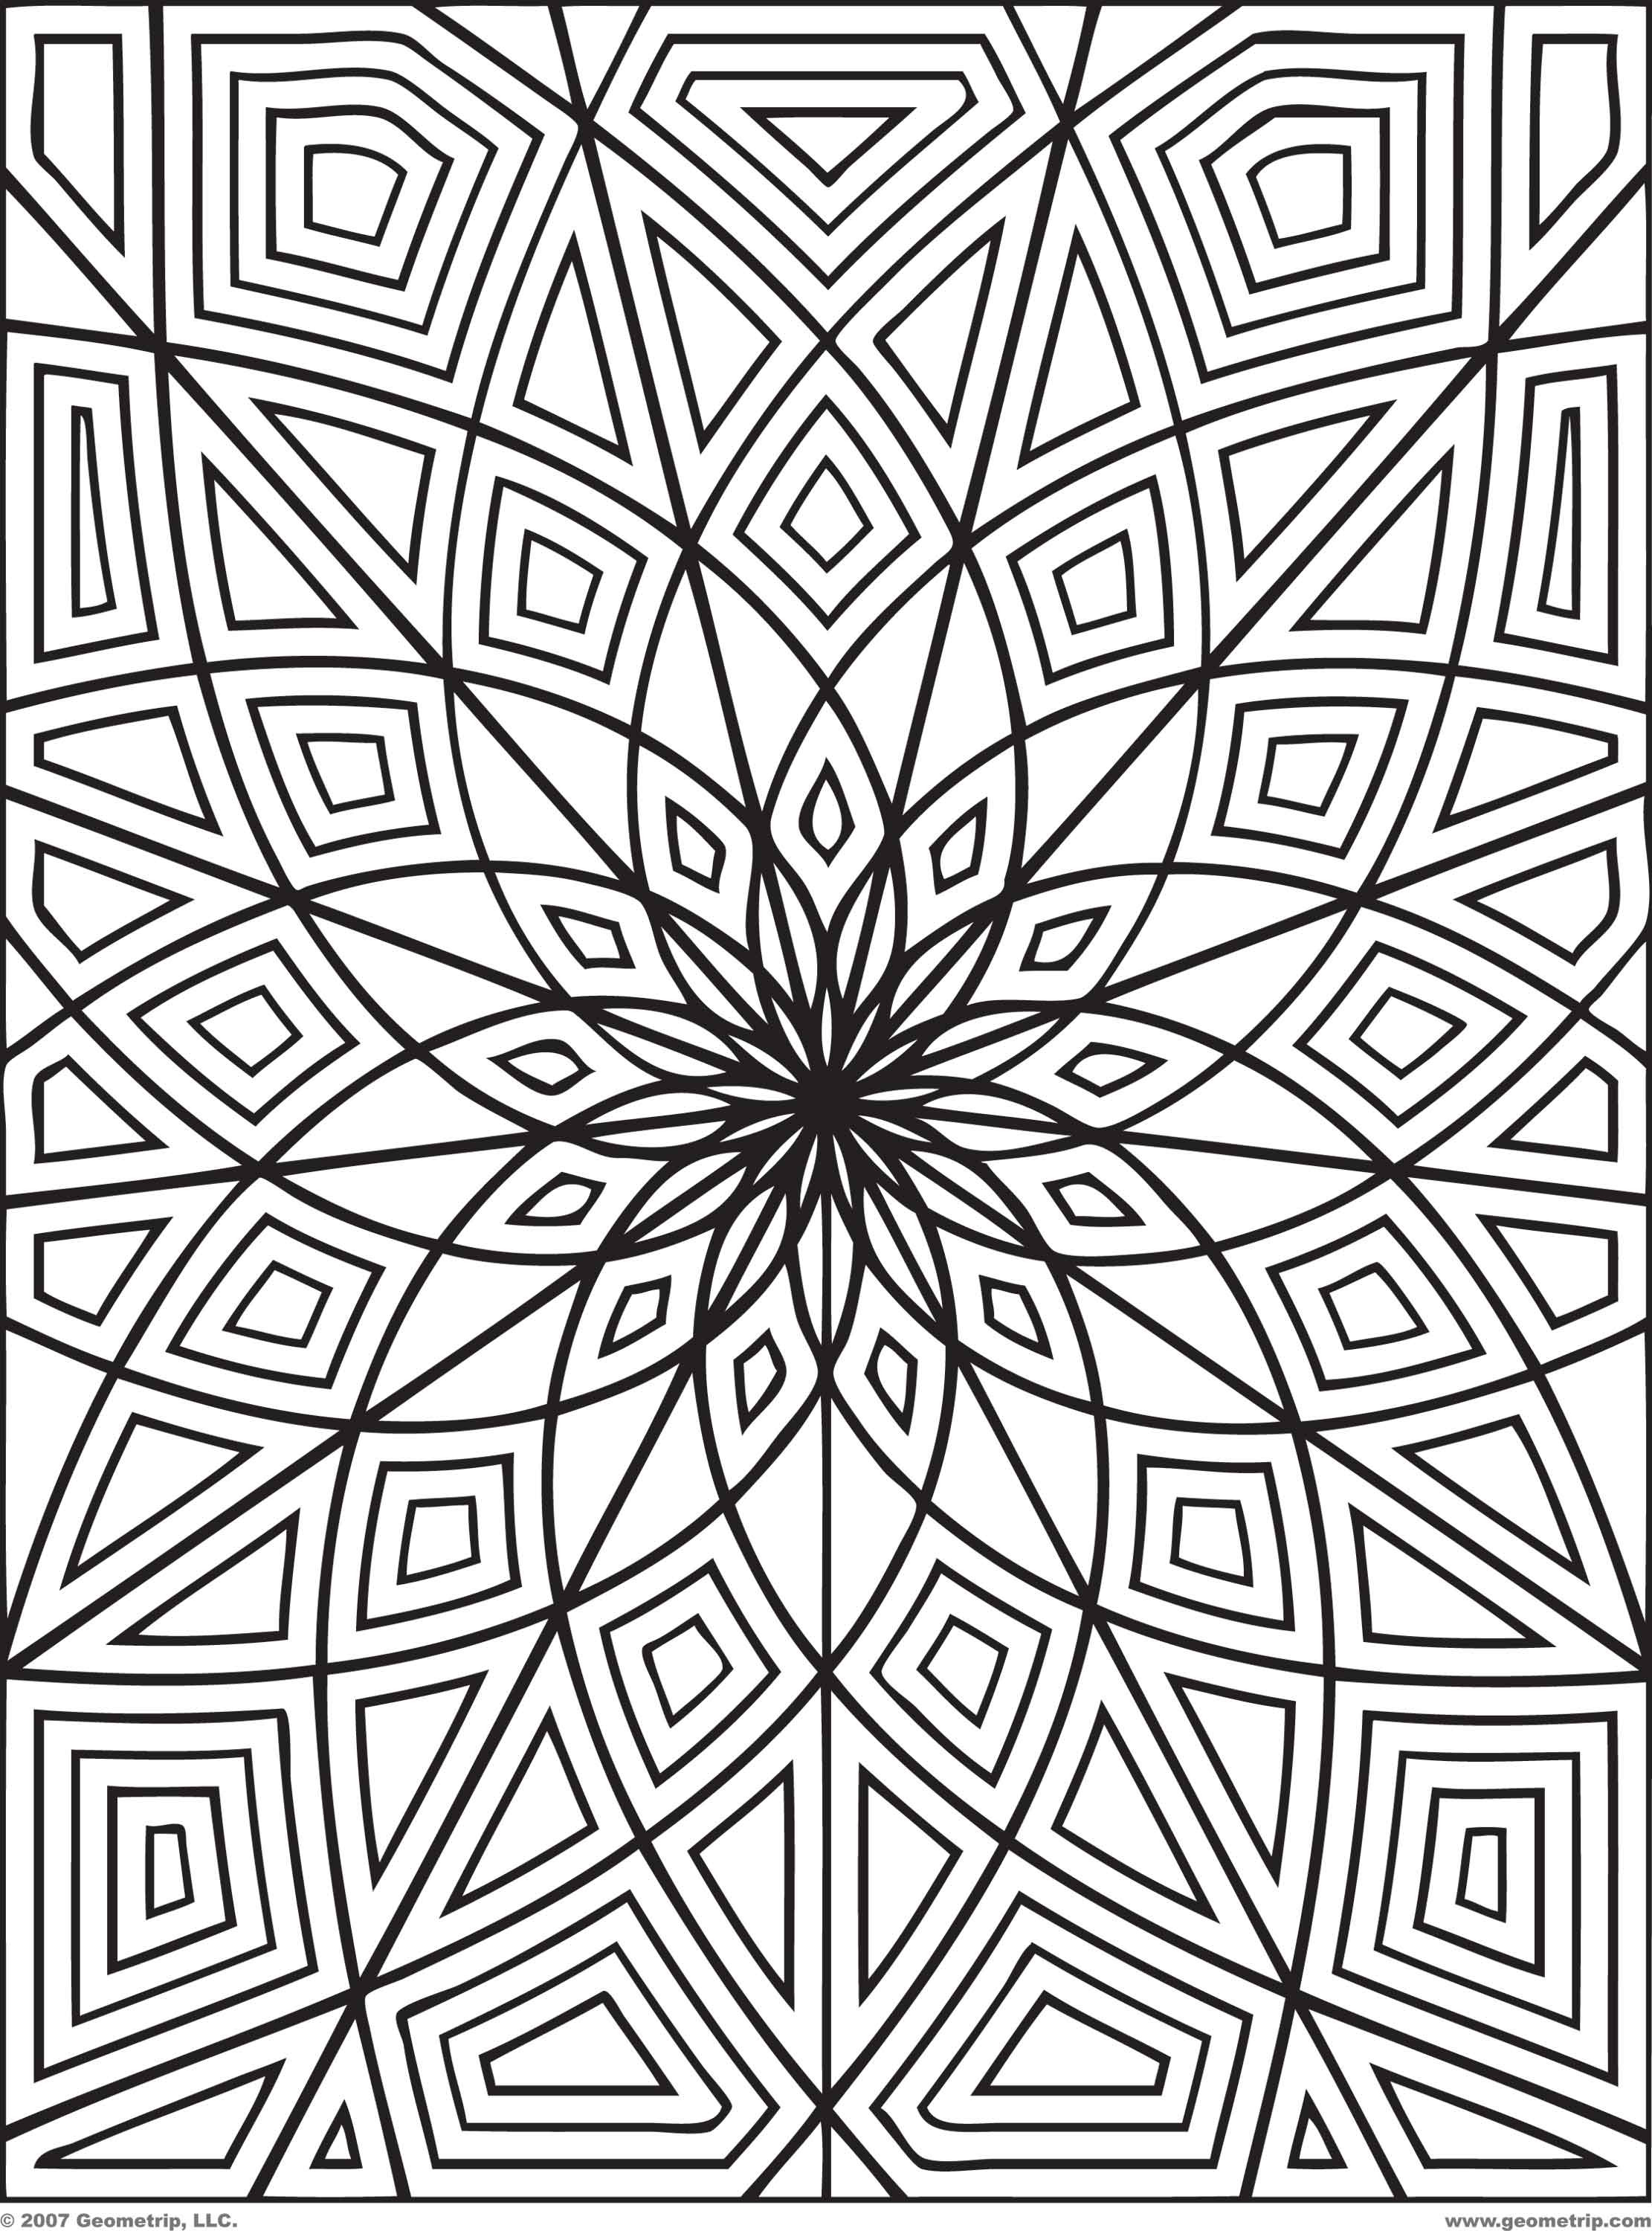 Free Printable Coloring Sheets Adults  Free Printable Adult Coloring Pages Awesome Image 14